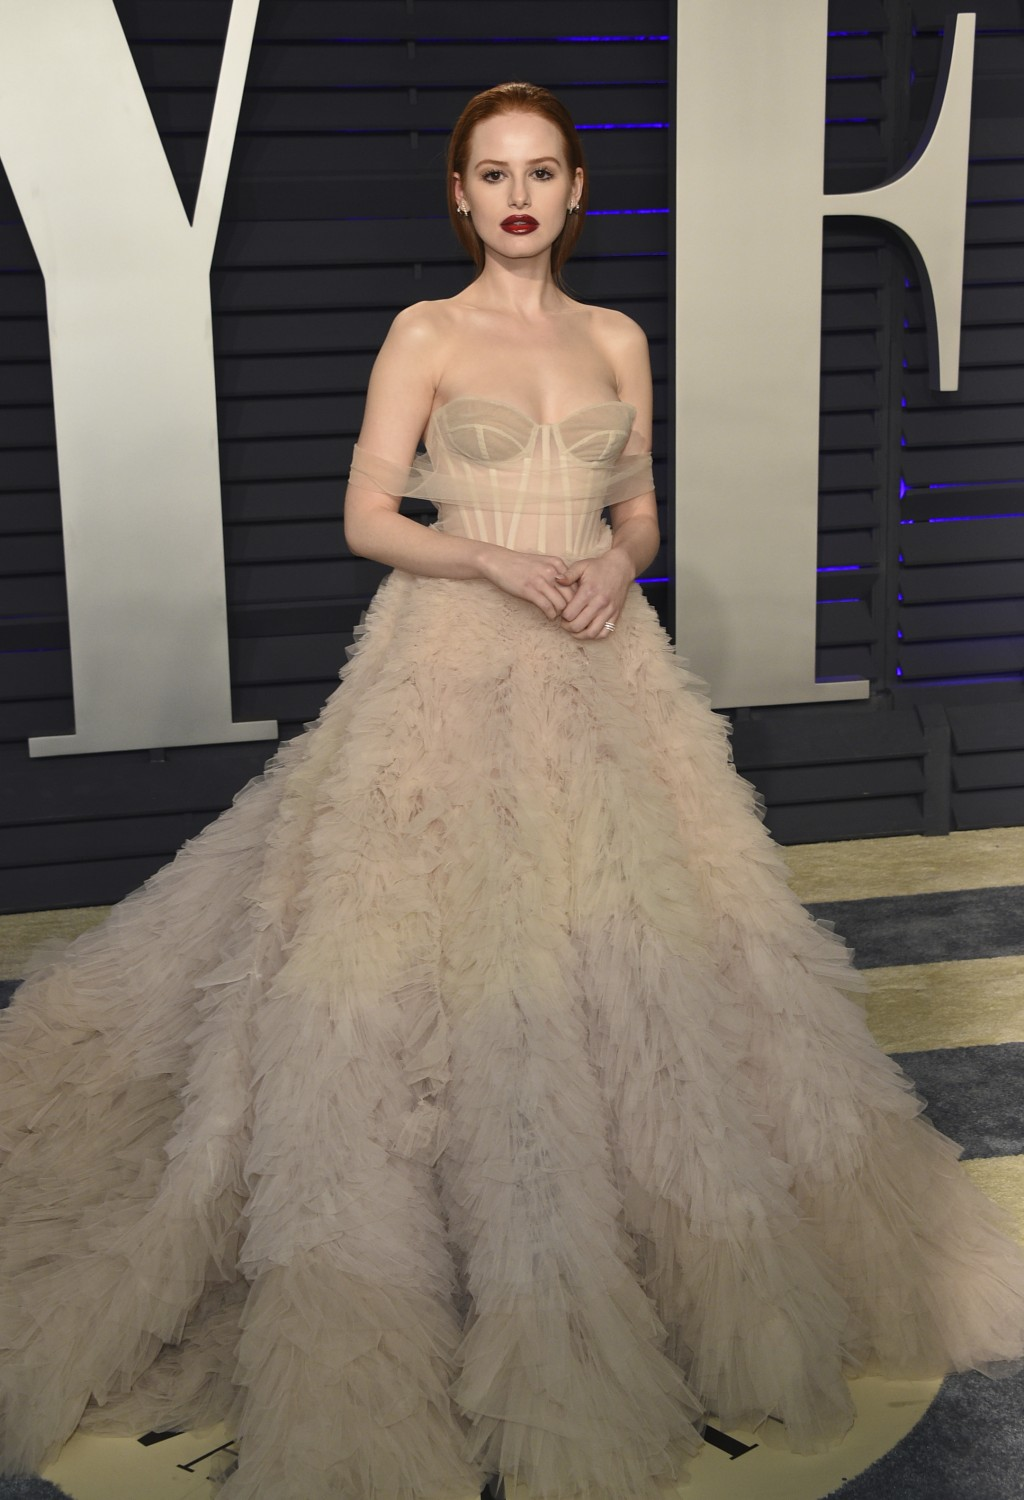 Madelaine Petsch arrives at the Vanity Fair Oscar Party on Sunday, Feb. 24, 2019, in Beverly Hills, Calif. (Photo by Evan Agostini/Invision/AP)